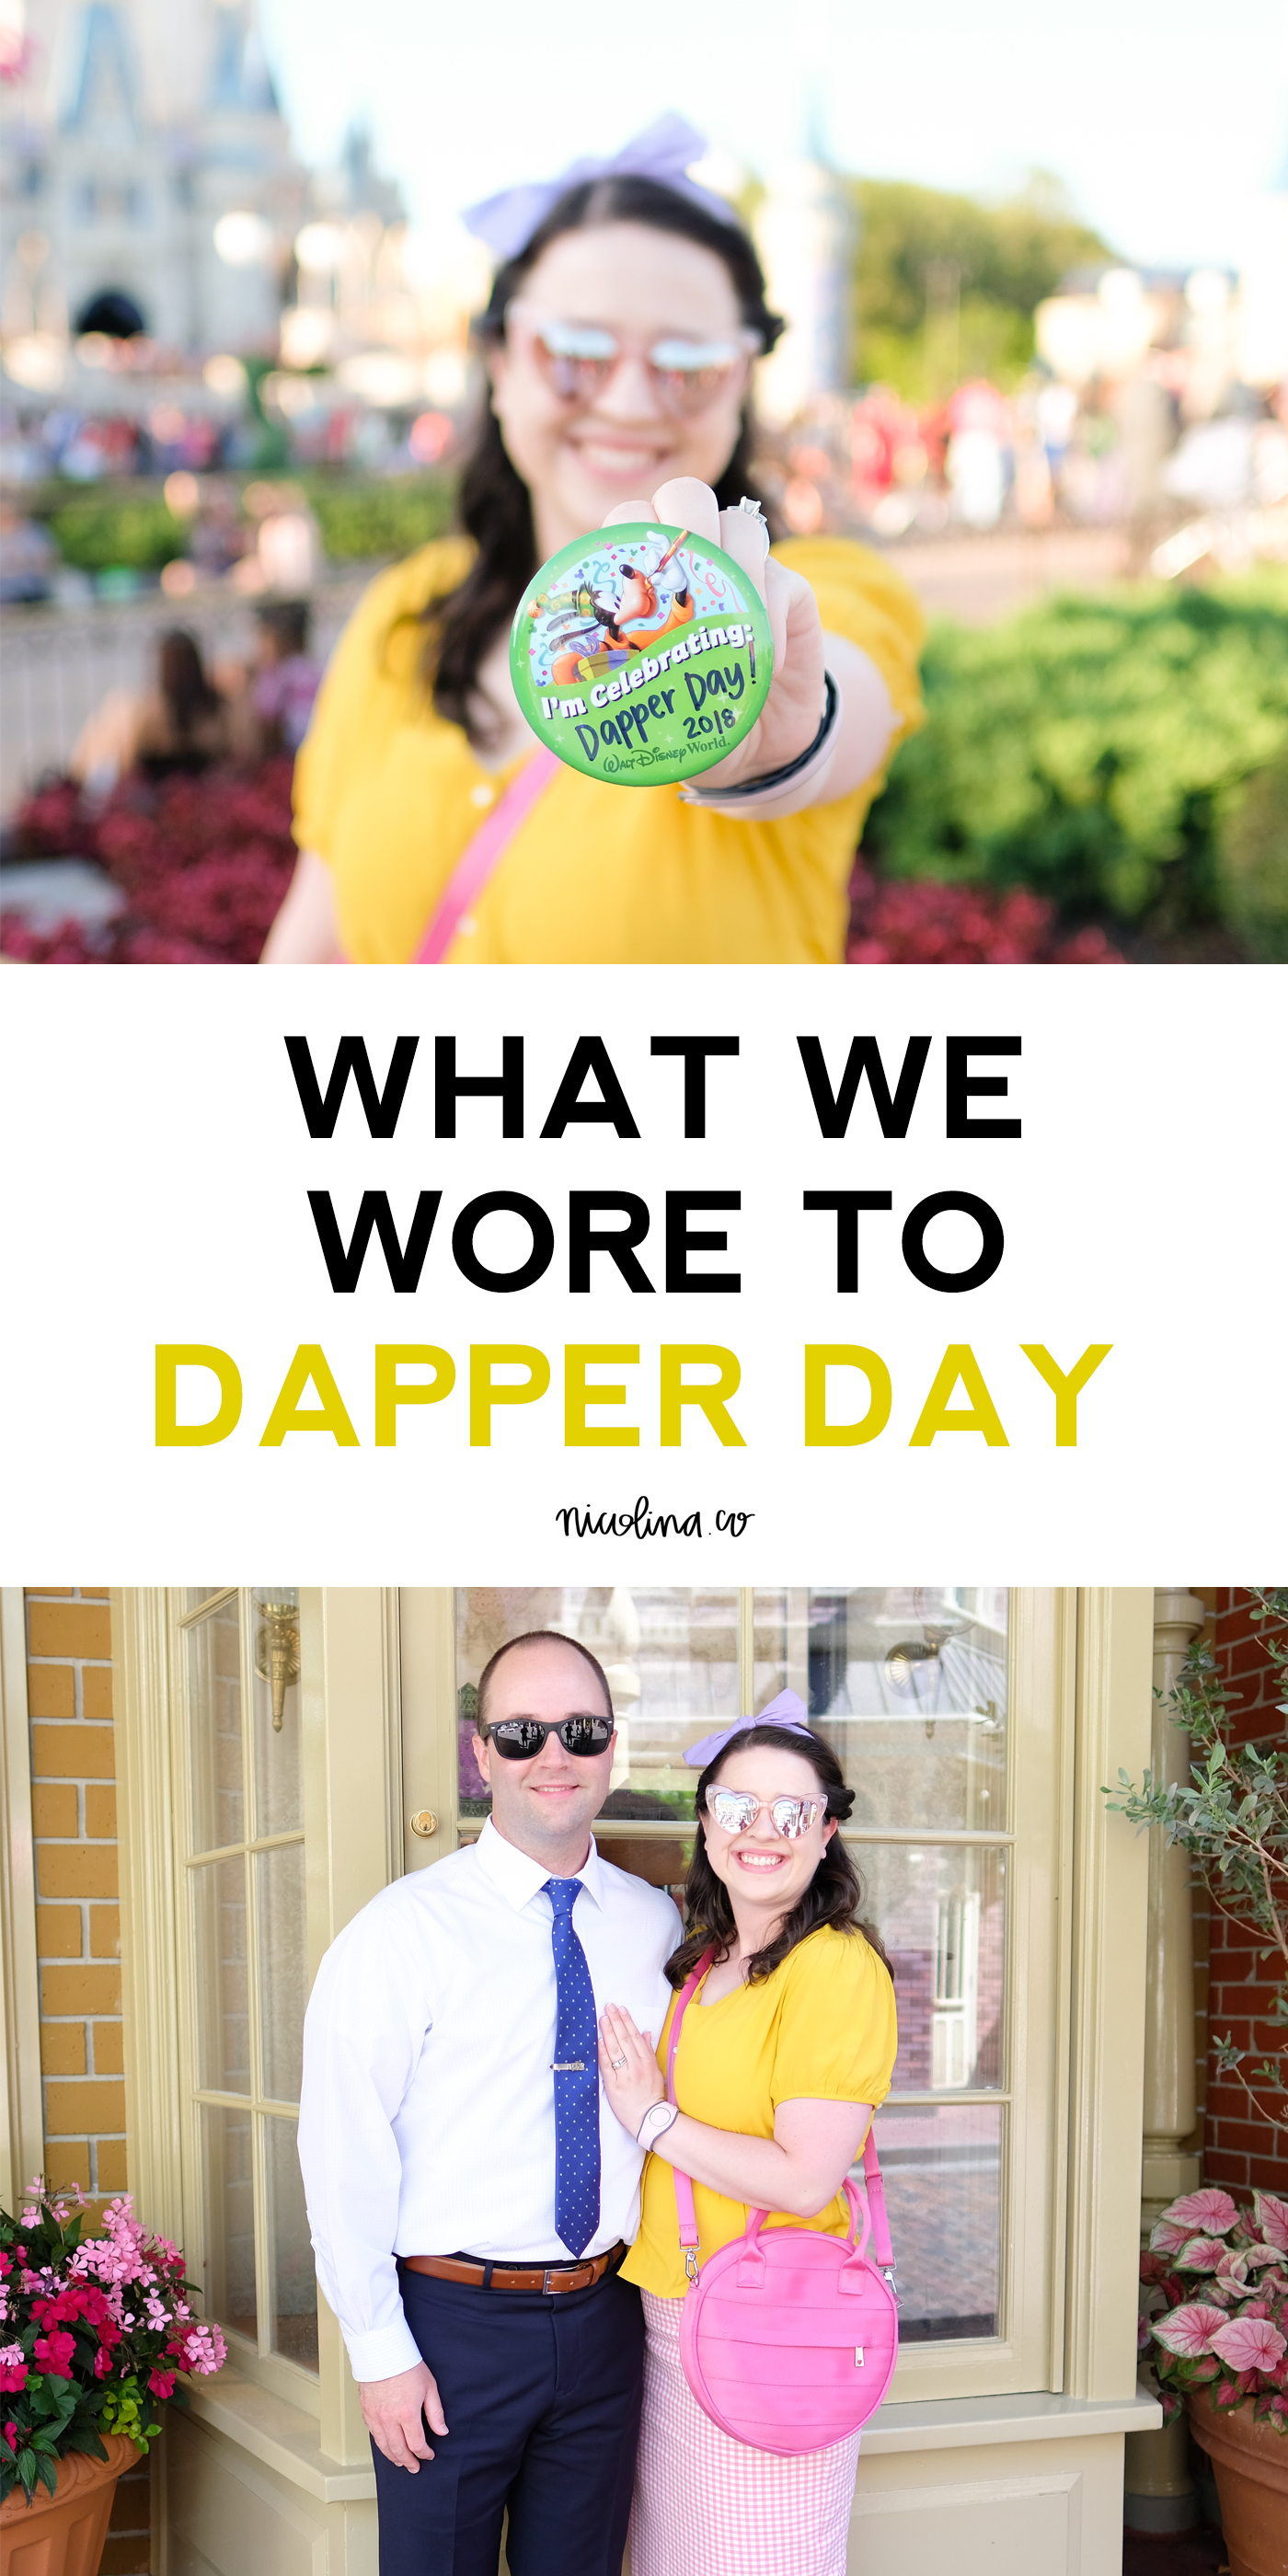 What We Wore to Dapper Day